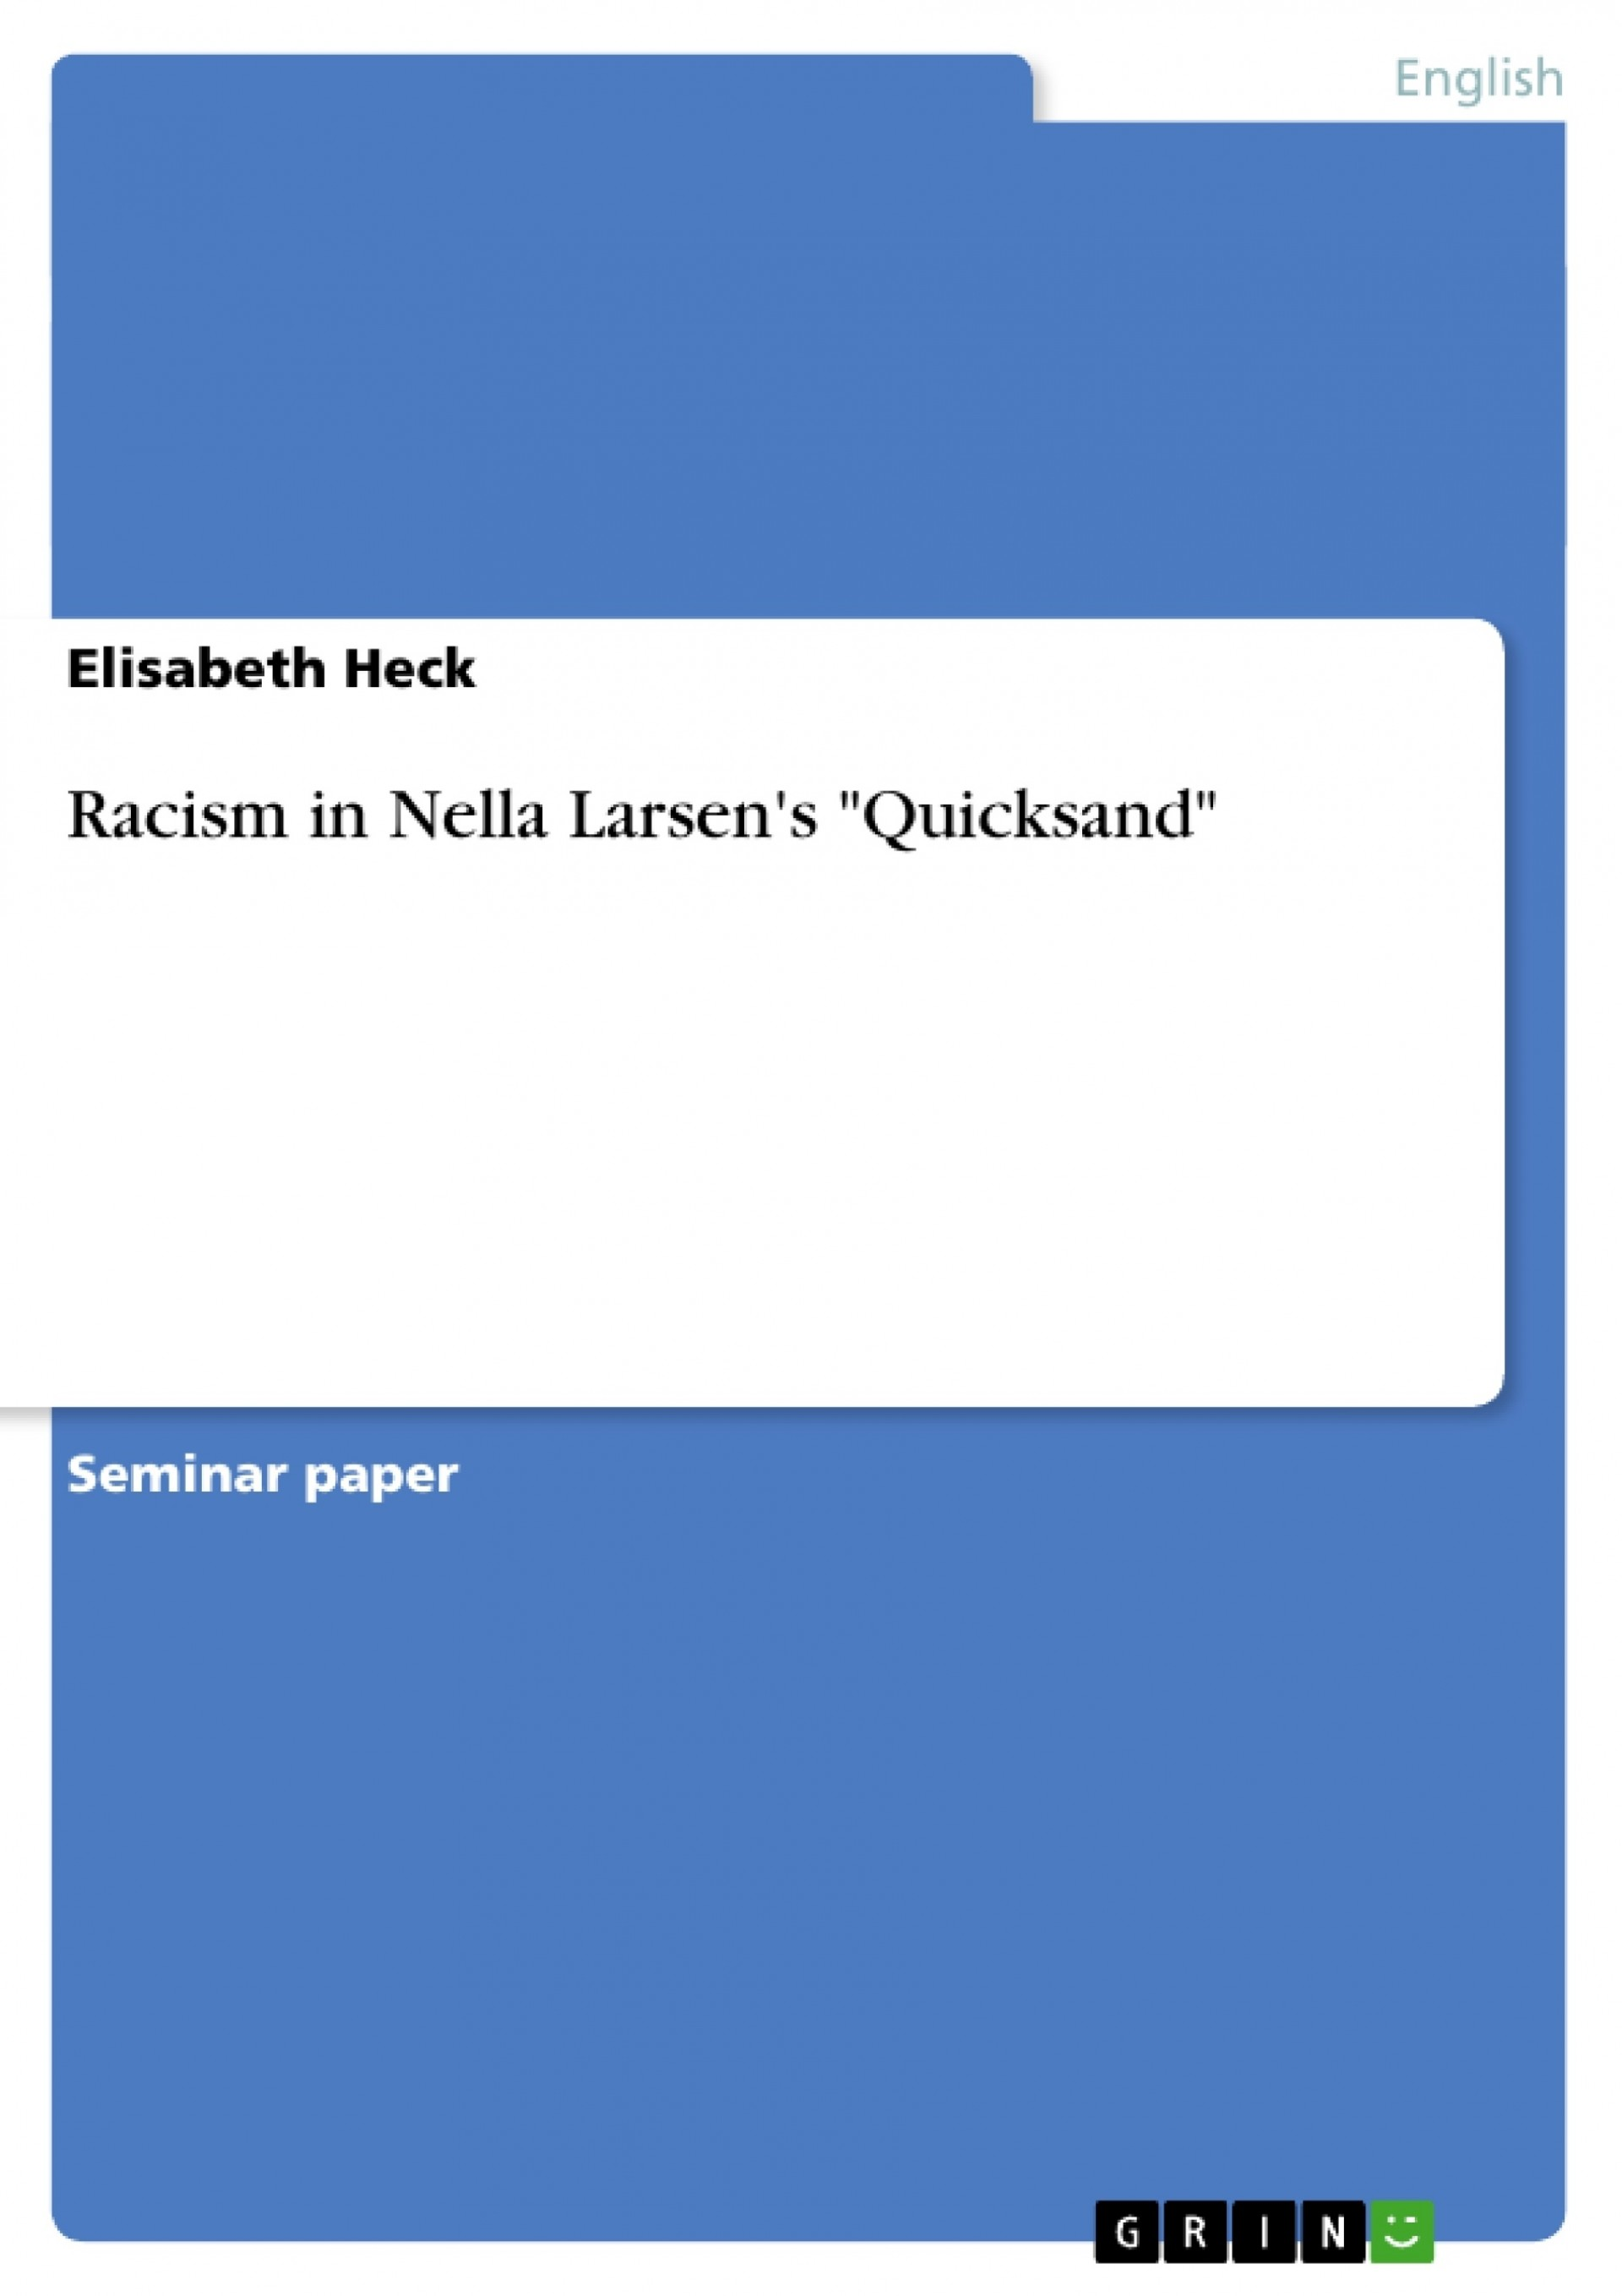 021 181607 0 Racism Essay Topics Excellent Questions Othello Paper 1920